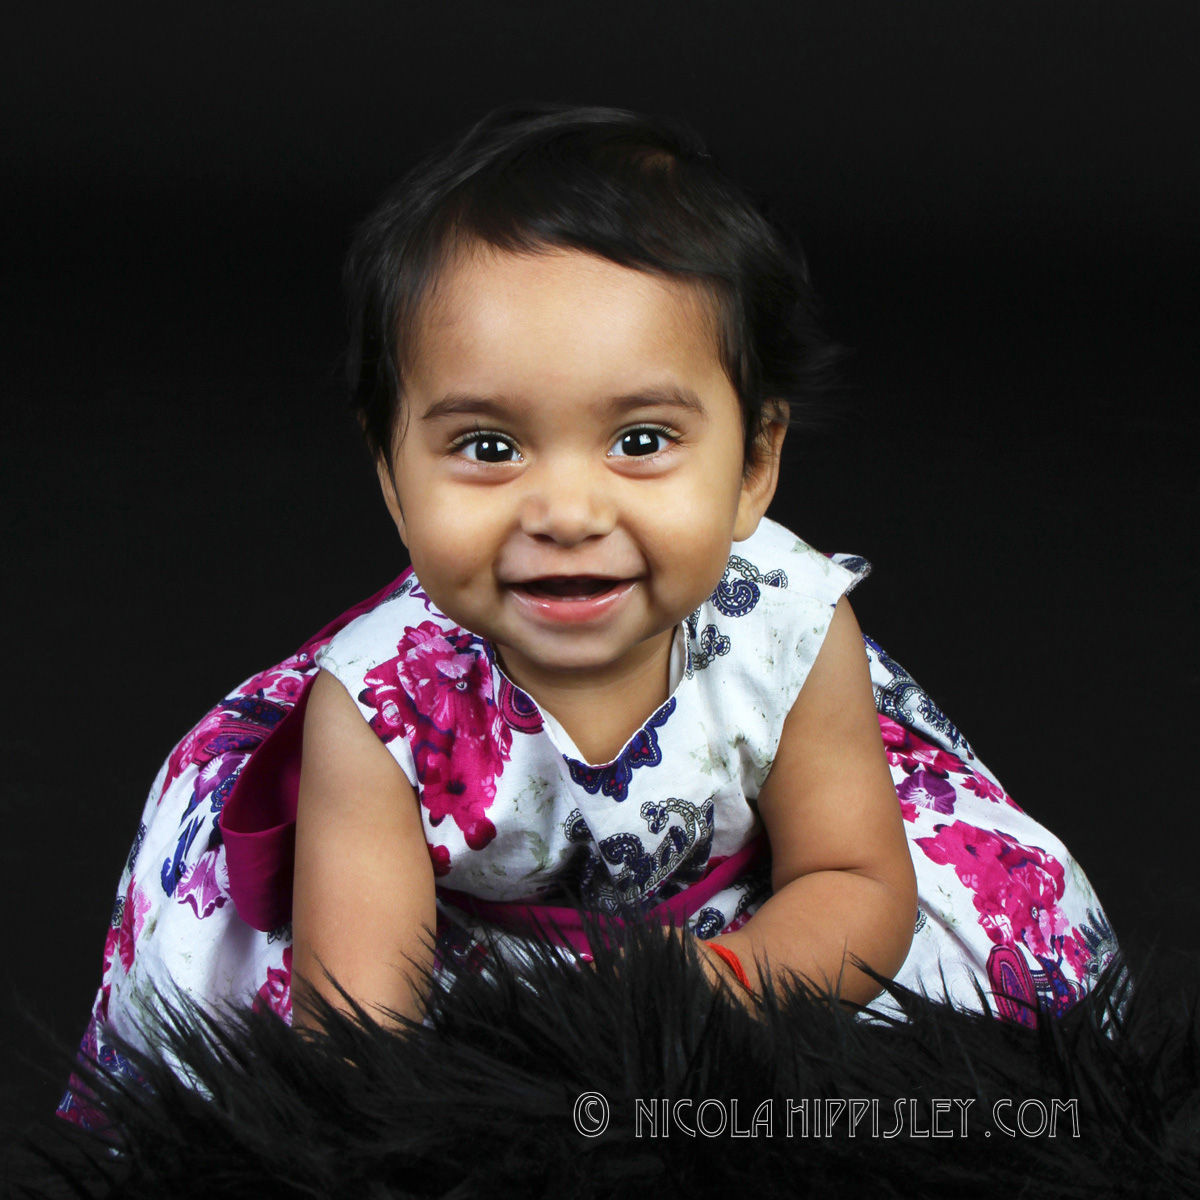 1indian_baby_portrait.jpg